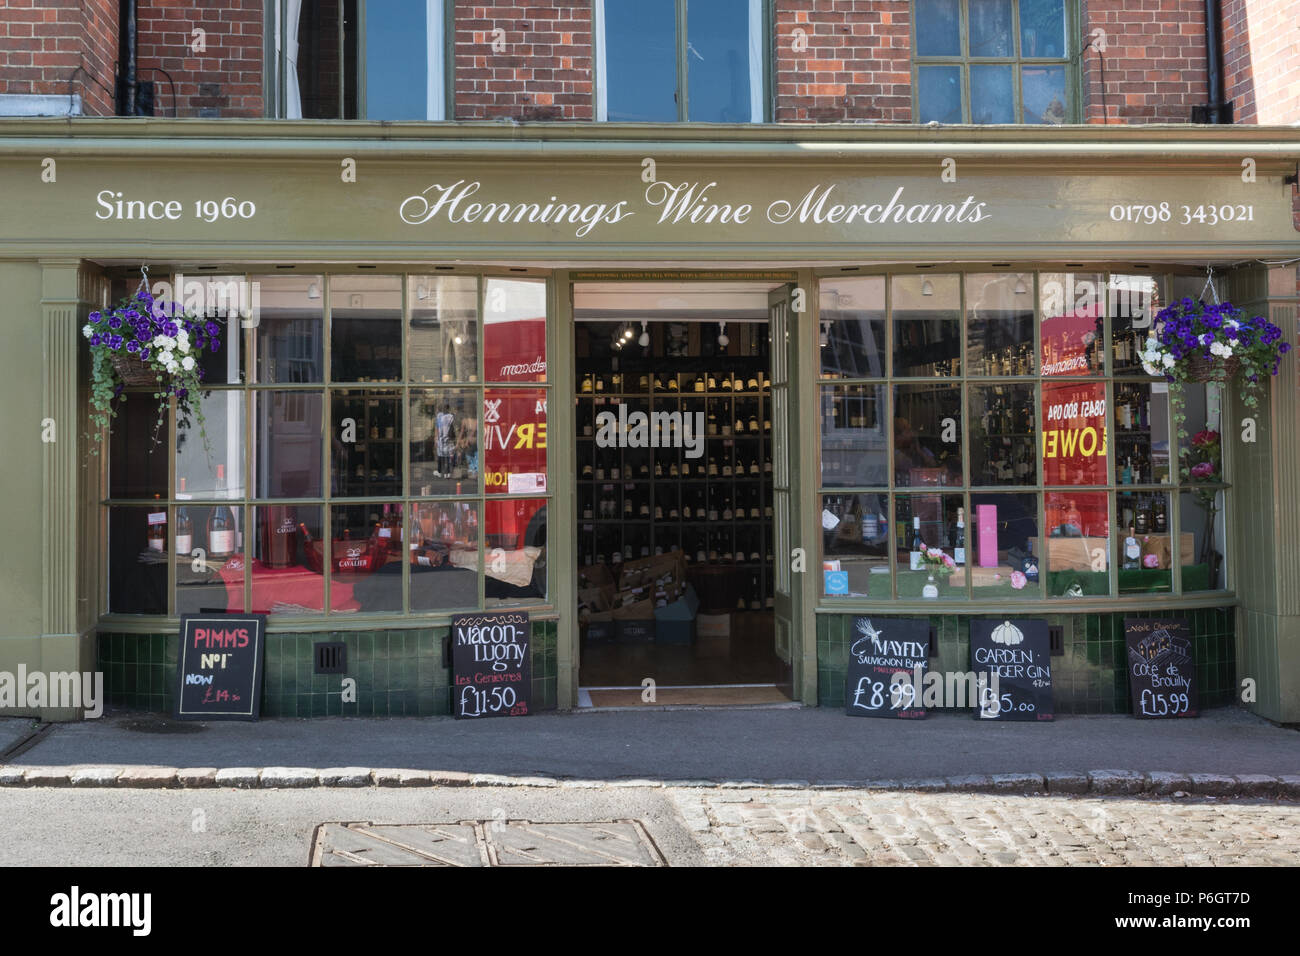 Hennings Wine Merchants shop in Petworth, West Sussex, UK - Stock Image